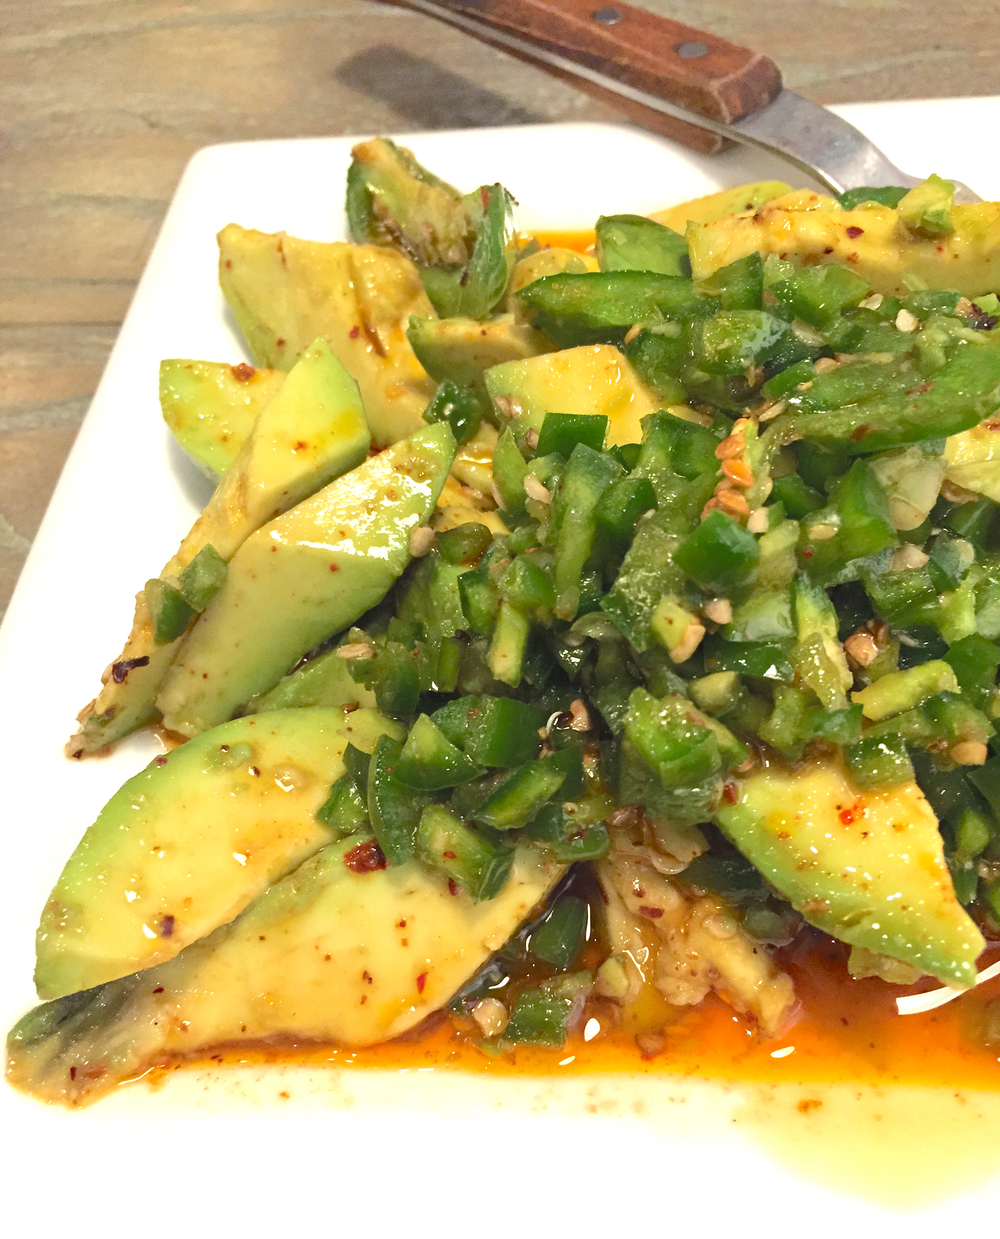 Chuan's Avocado with Pepper